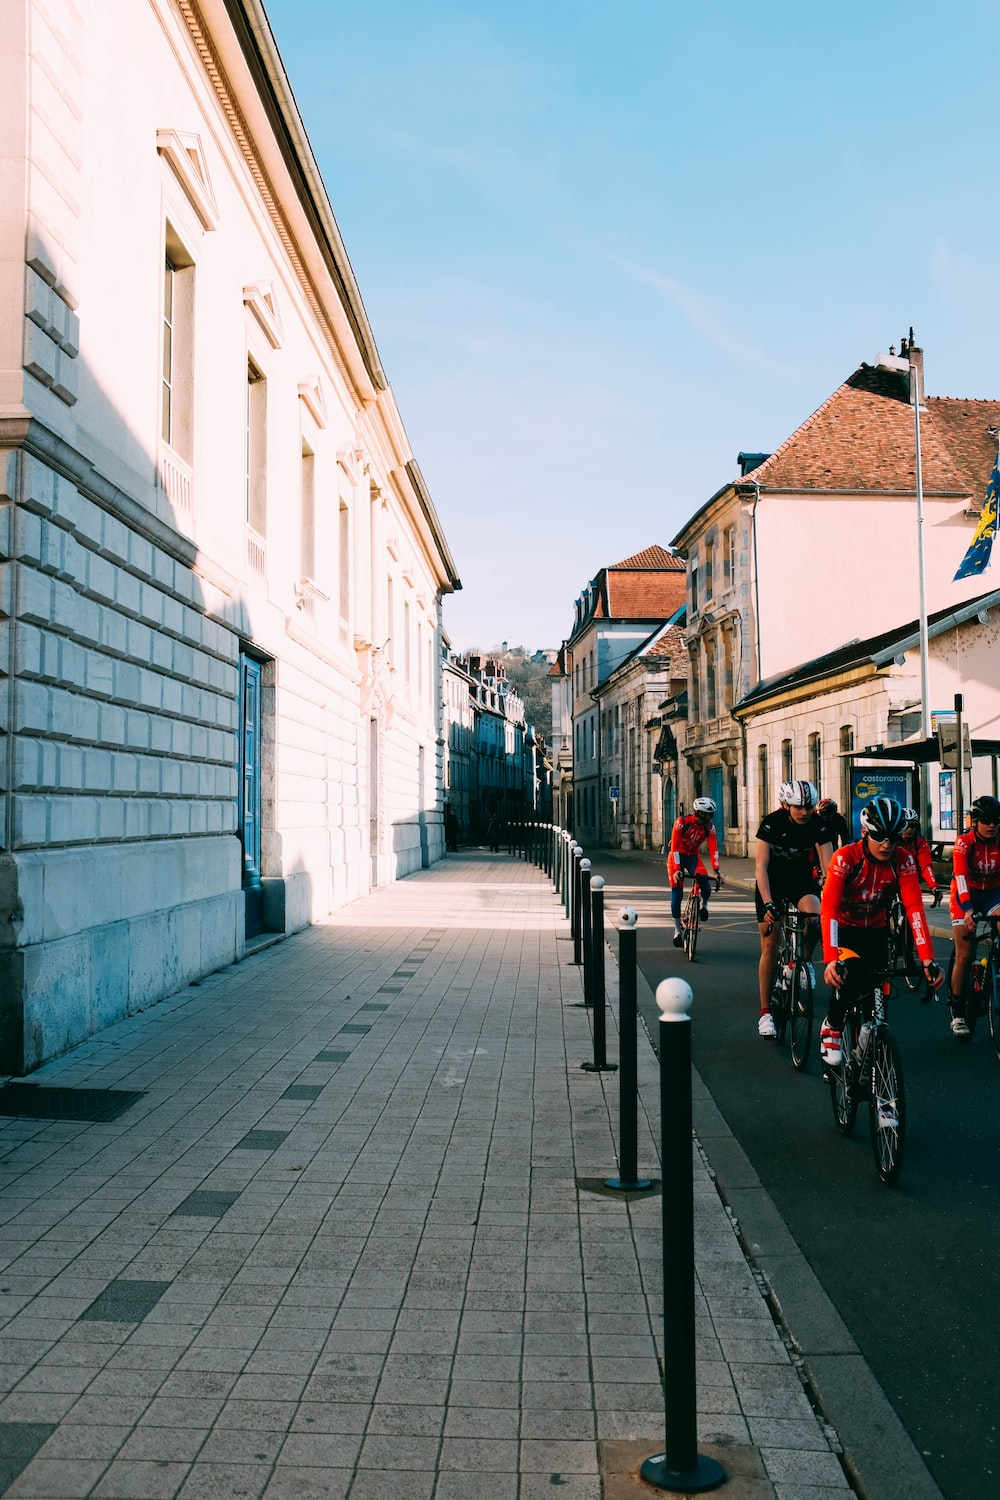 group of cyclist on street during daytime